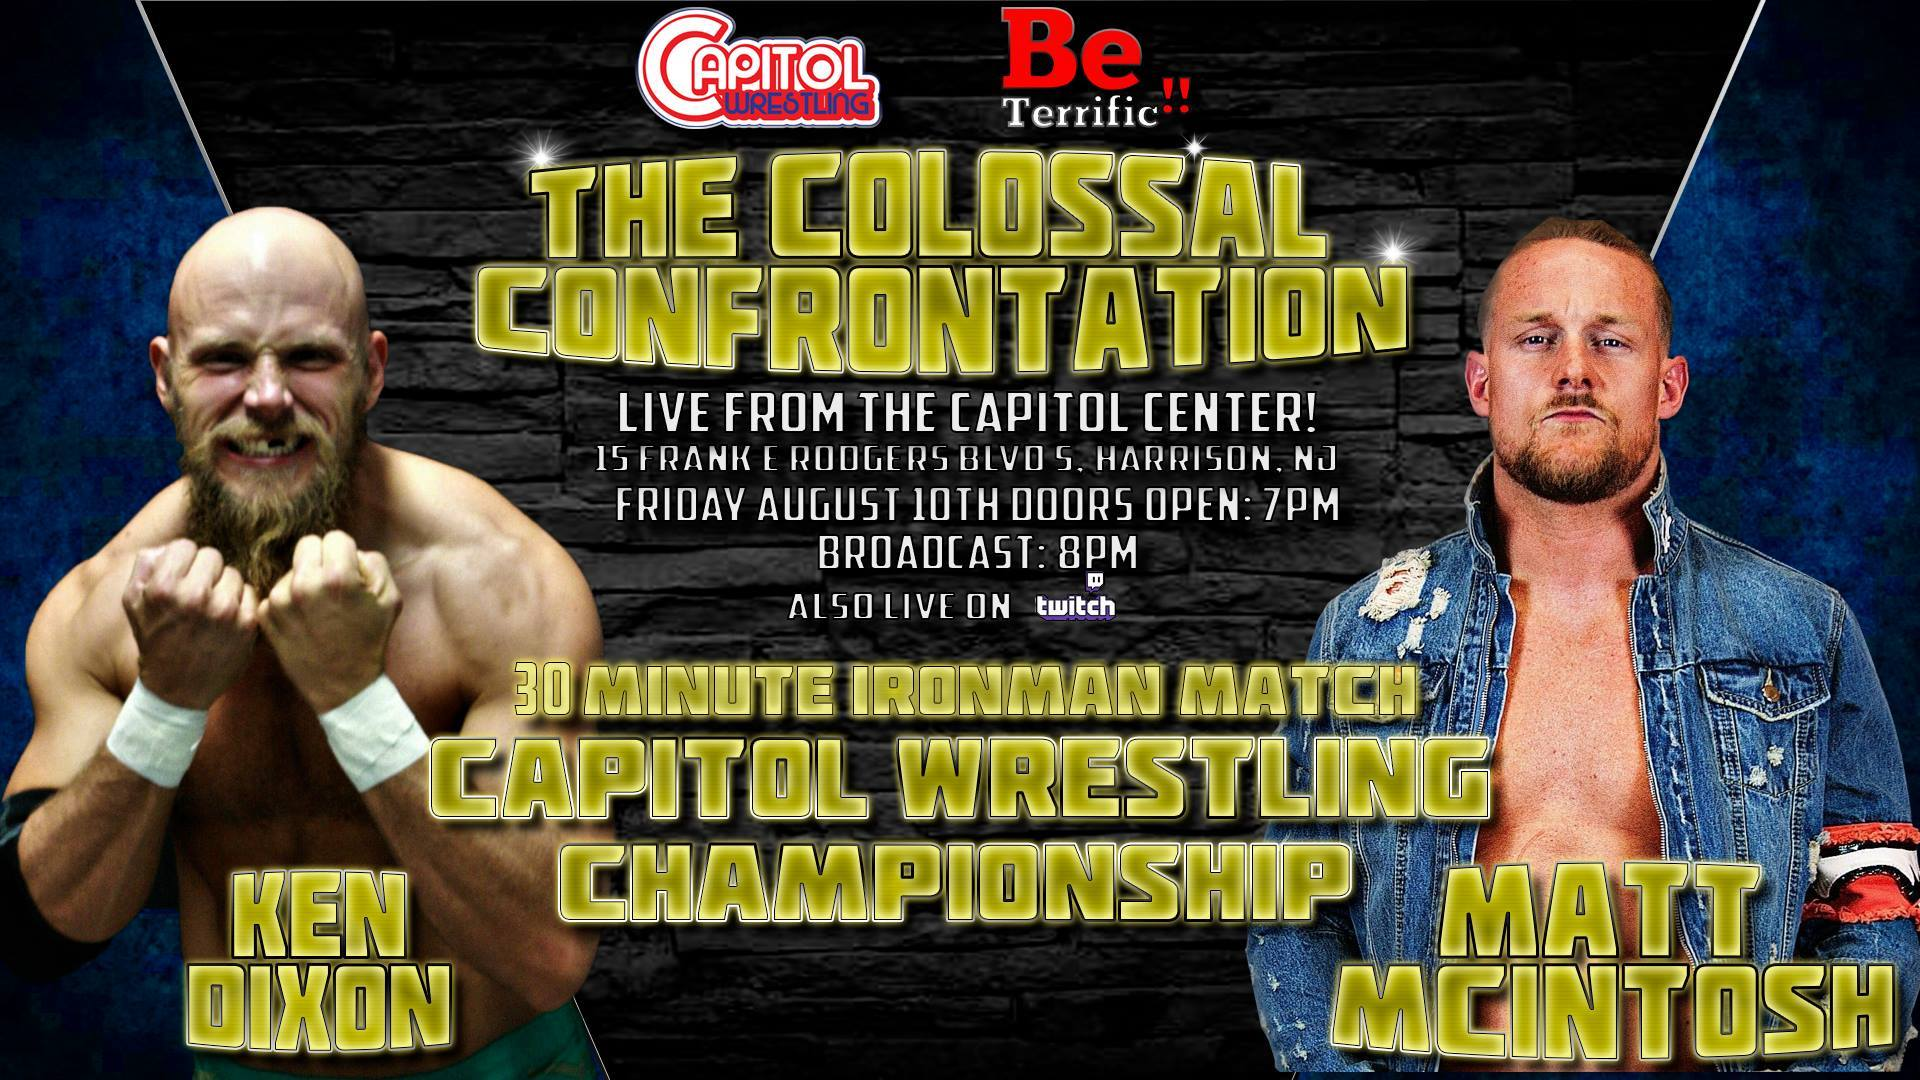 Capitol Wrestling's Colossal Confrontation